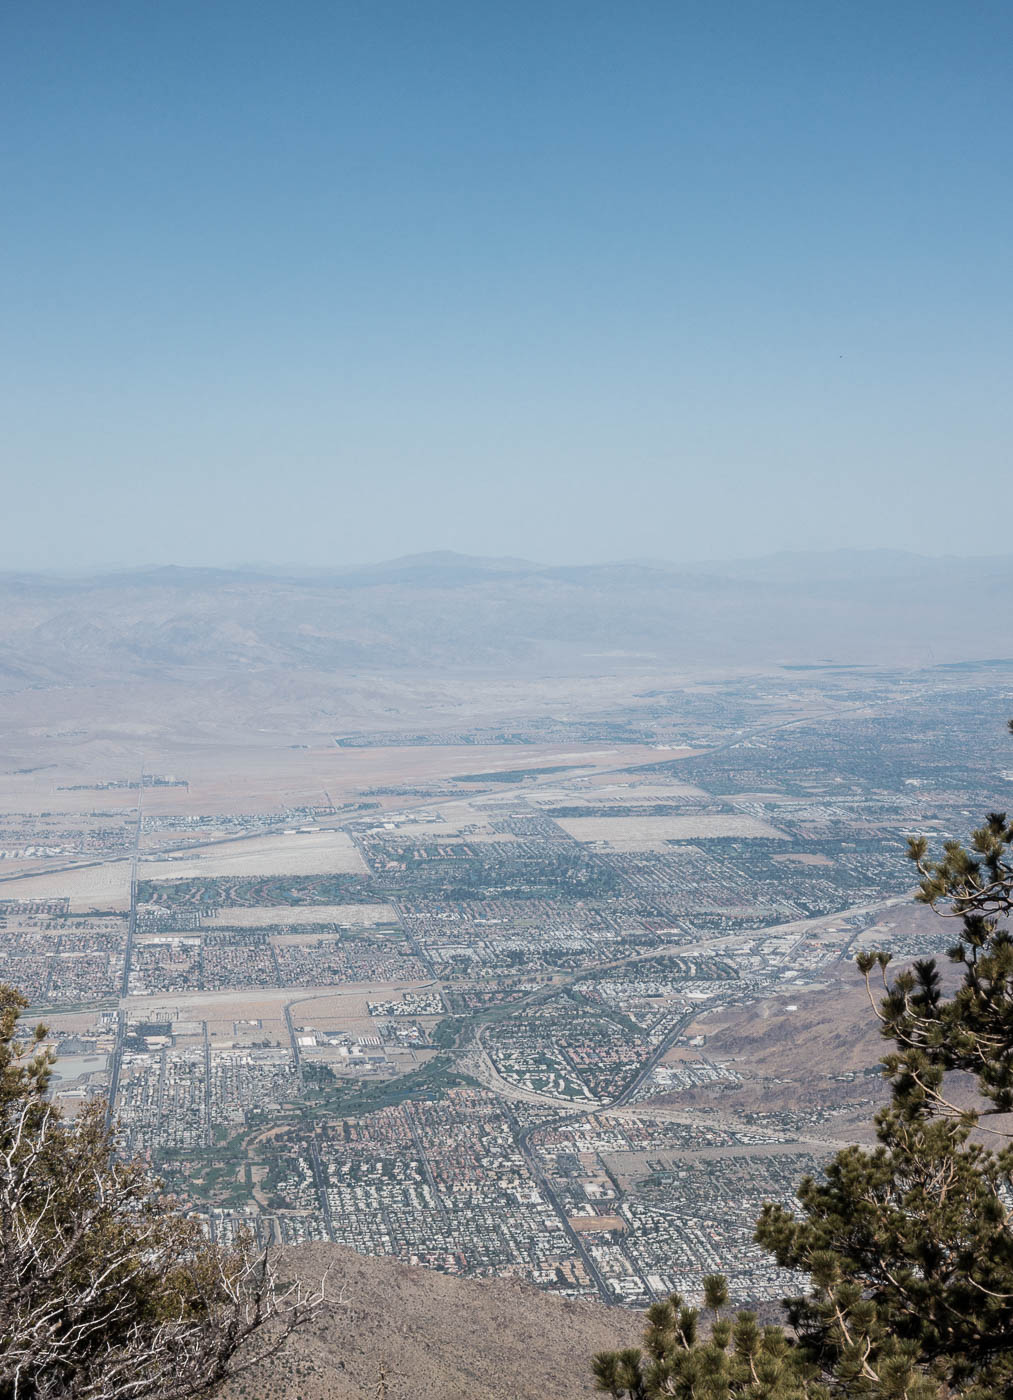 View at the top after riding the Palm Springs aerial tramway! | The Chic Diary.jpg